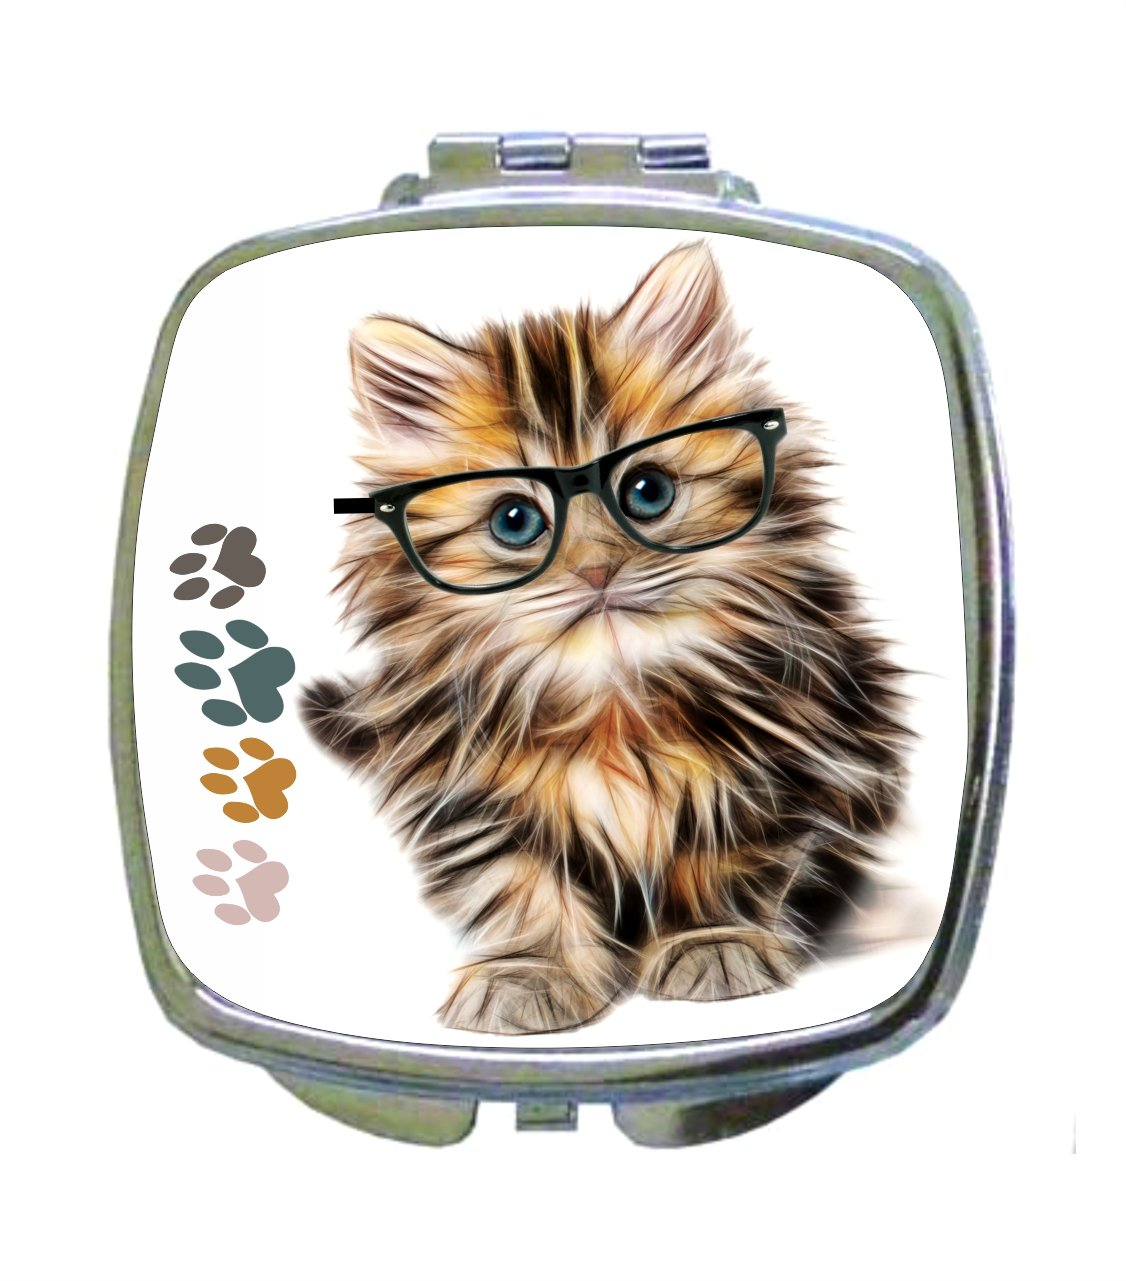 Hipster Furry Kitty Cat in Black Glasses with Multicolored Pawprints - Kitten Animal - Compact Beauty Mirror - Square Shaped